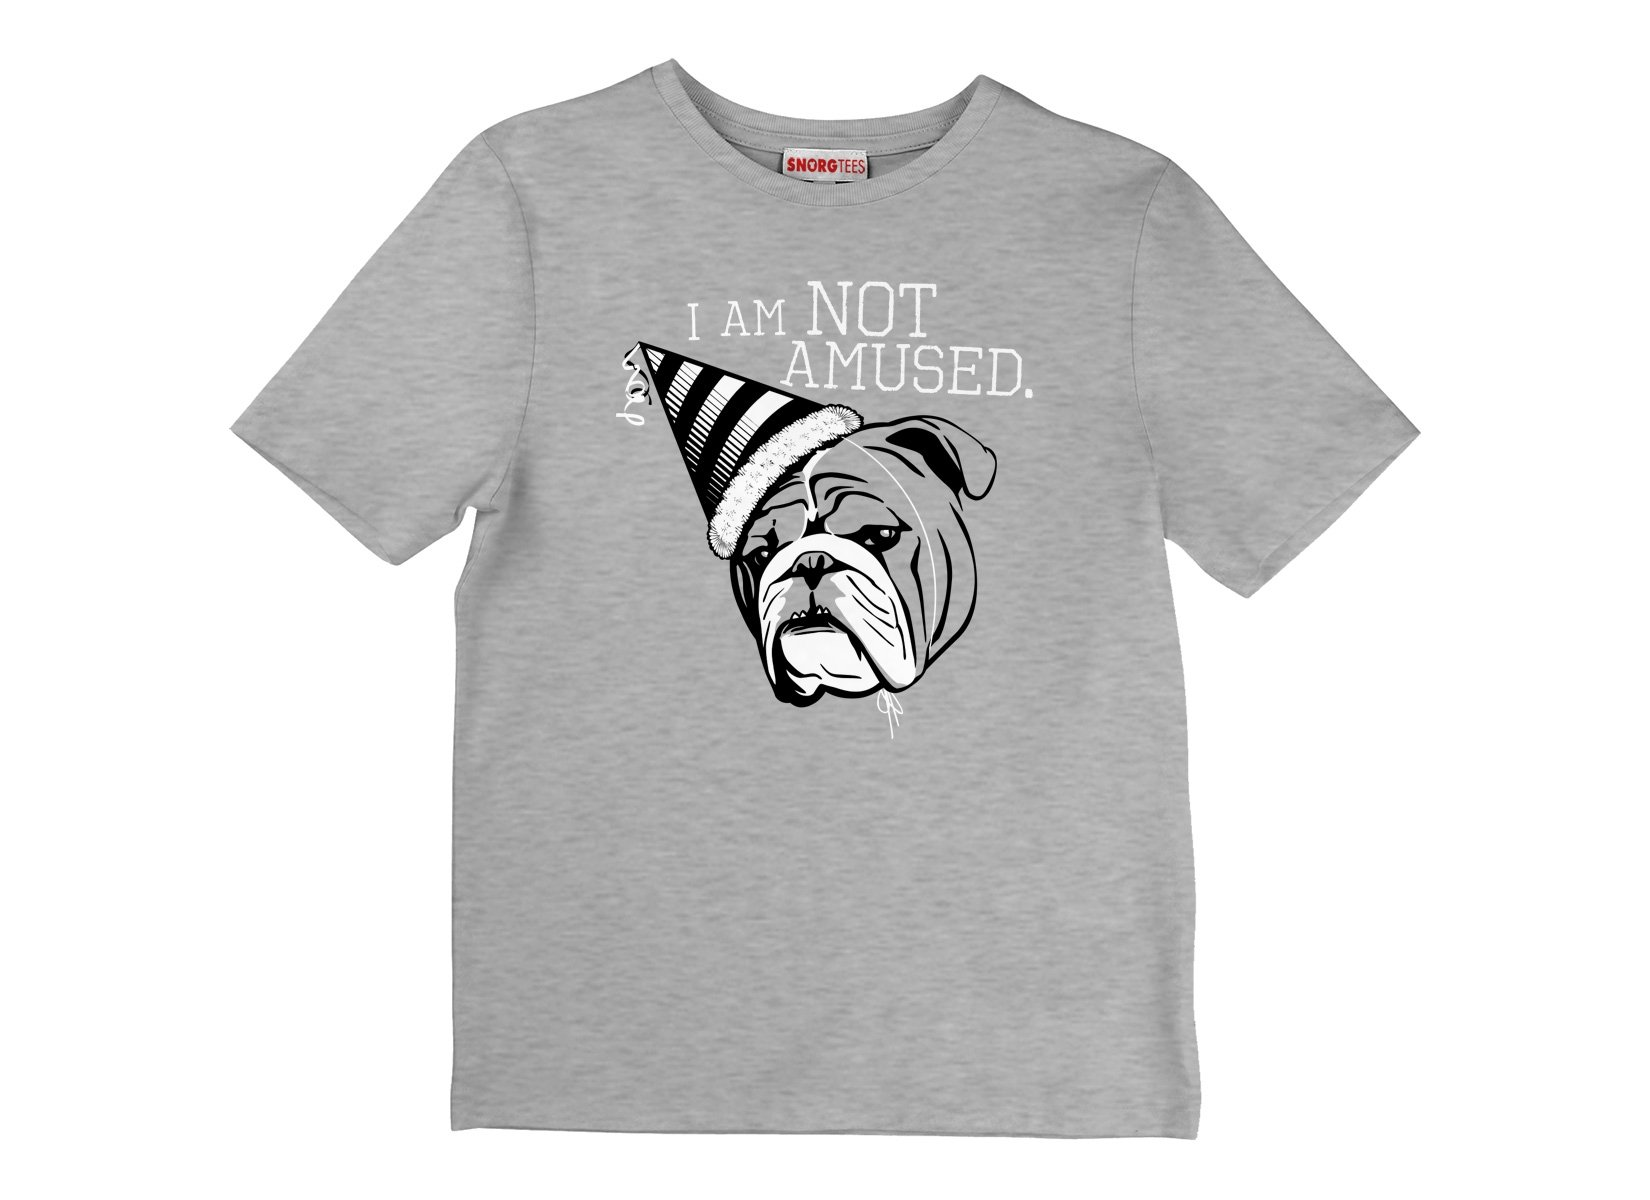 I Am Not Amused on Kids T-Shirt